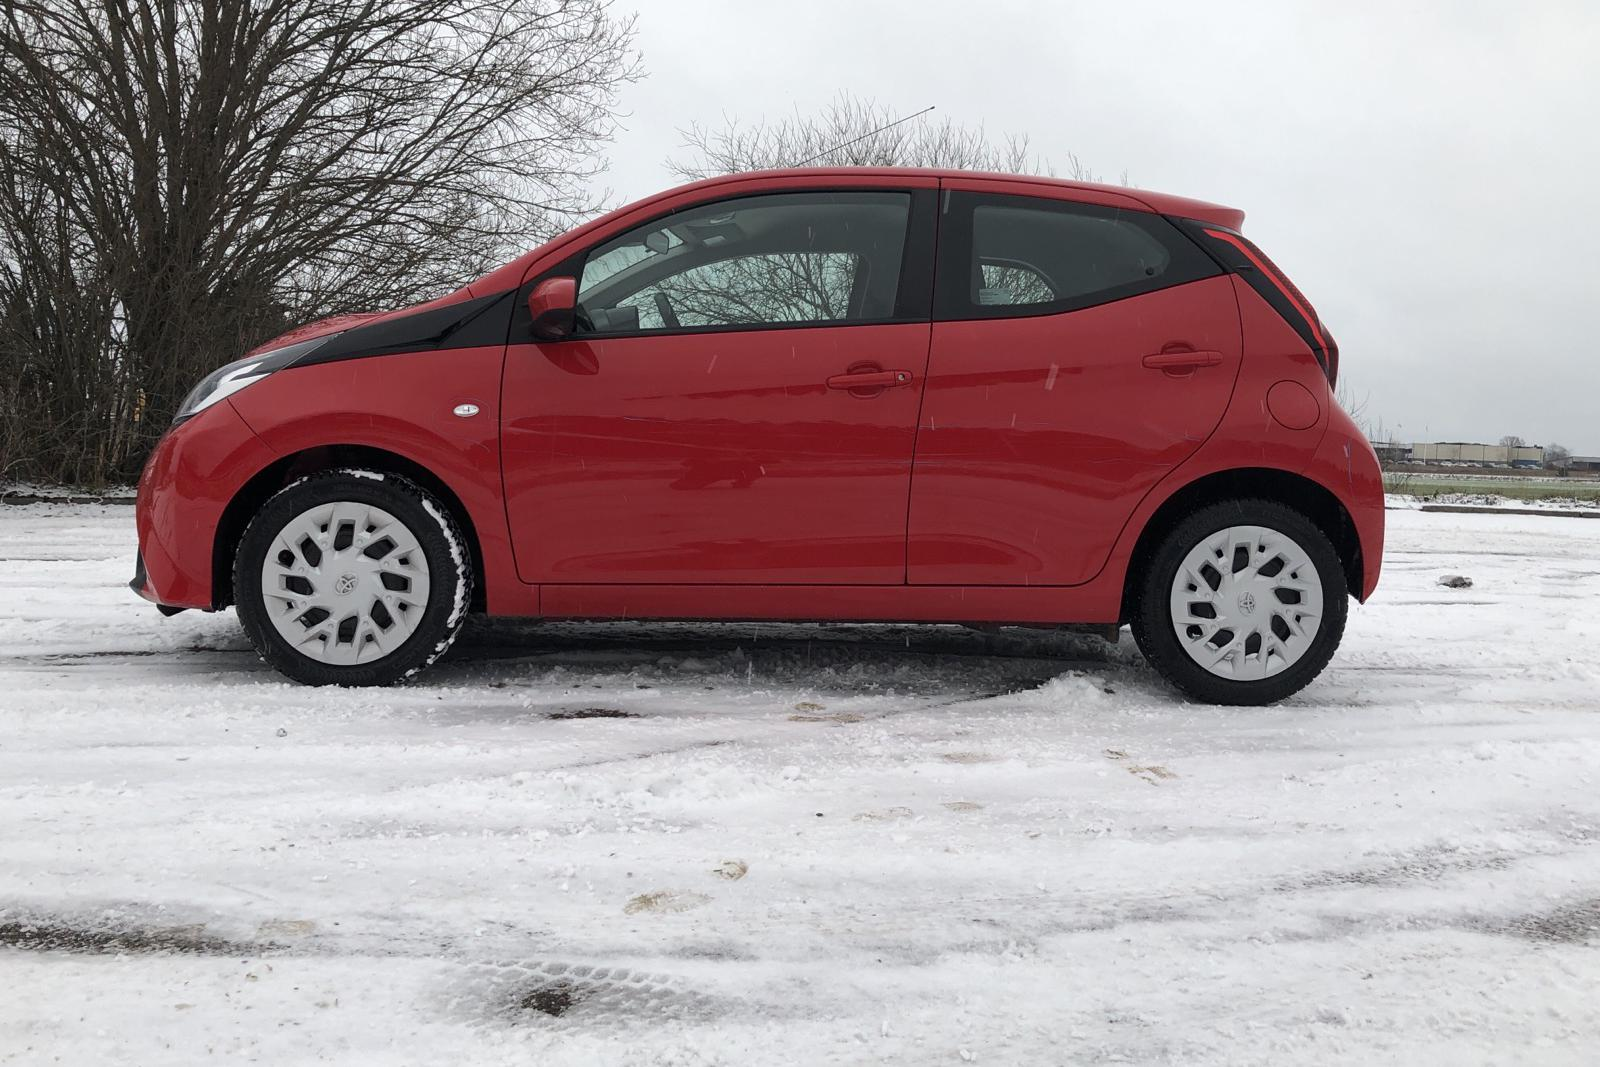 Toyota Aygo 1.0 5dr (72hk) - 44 640 km - Manual - red - 2019